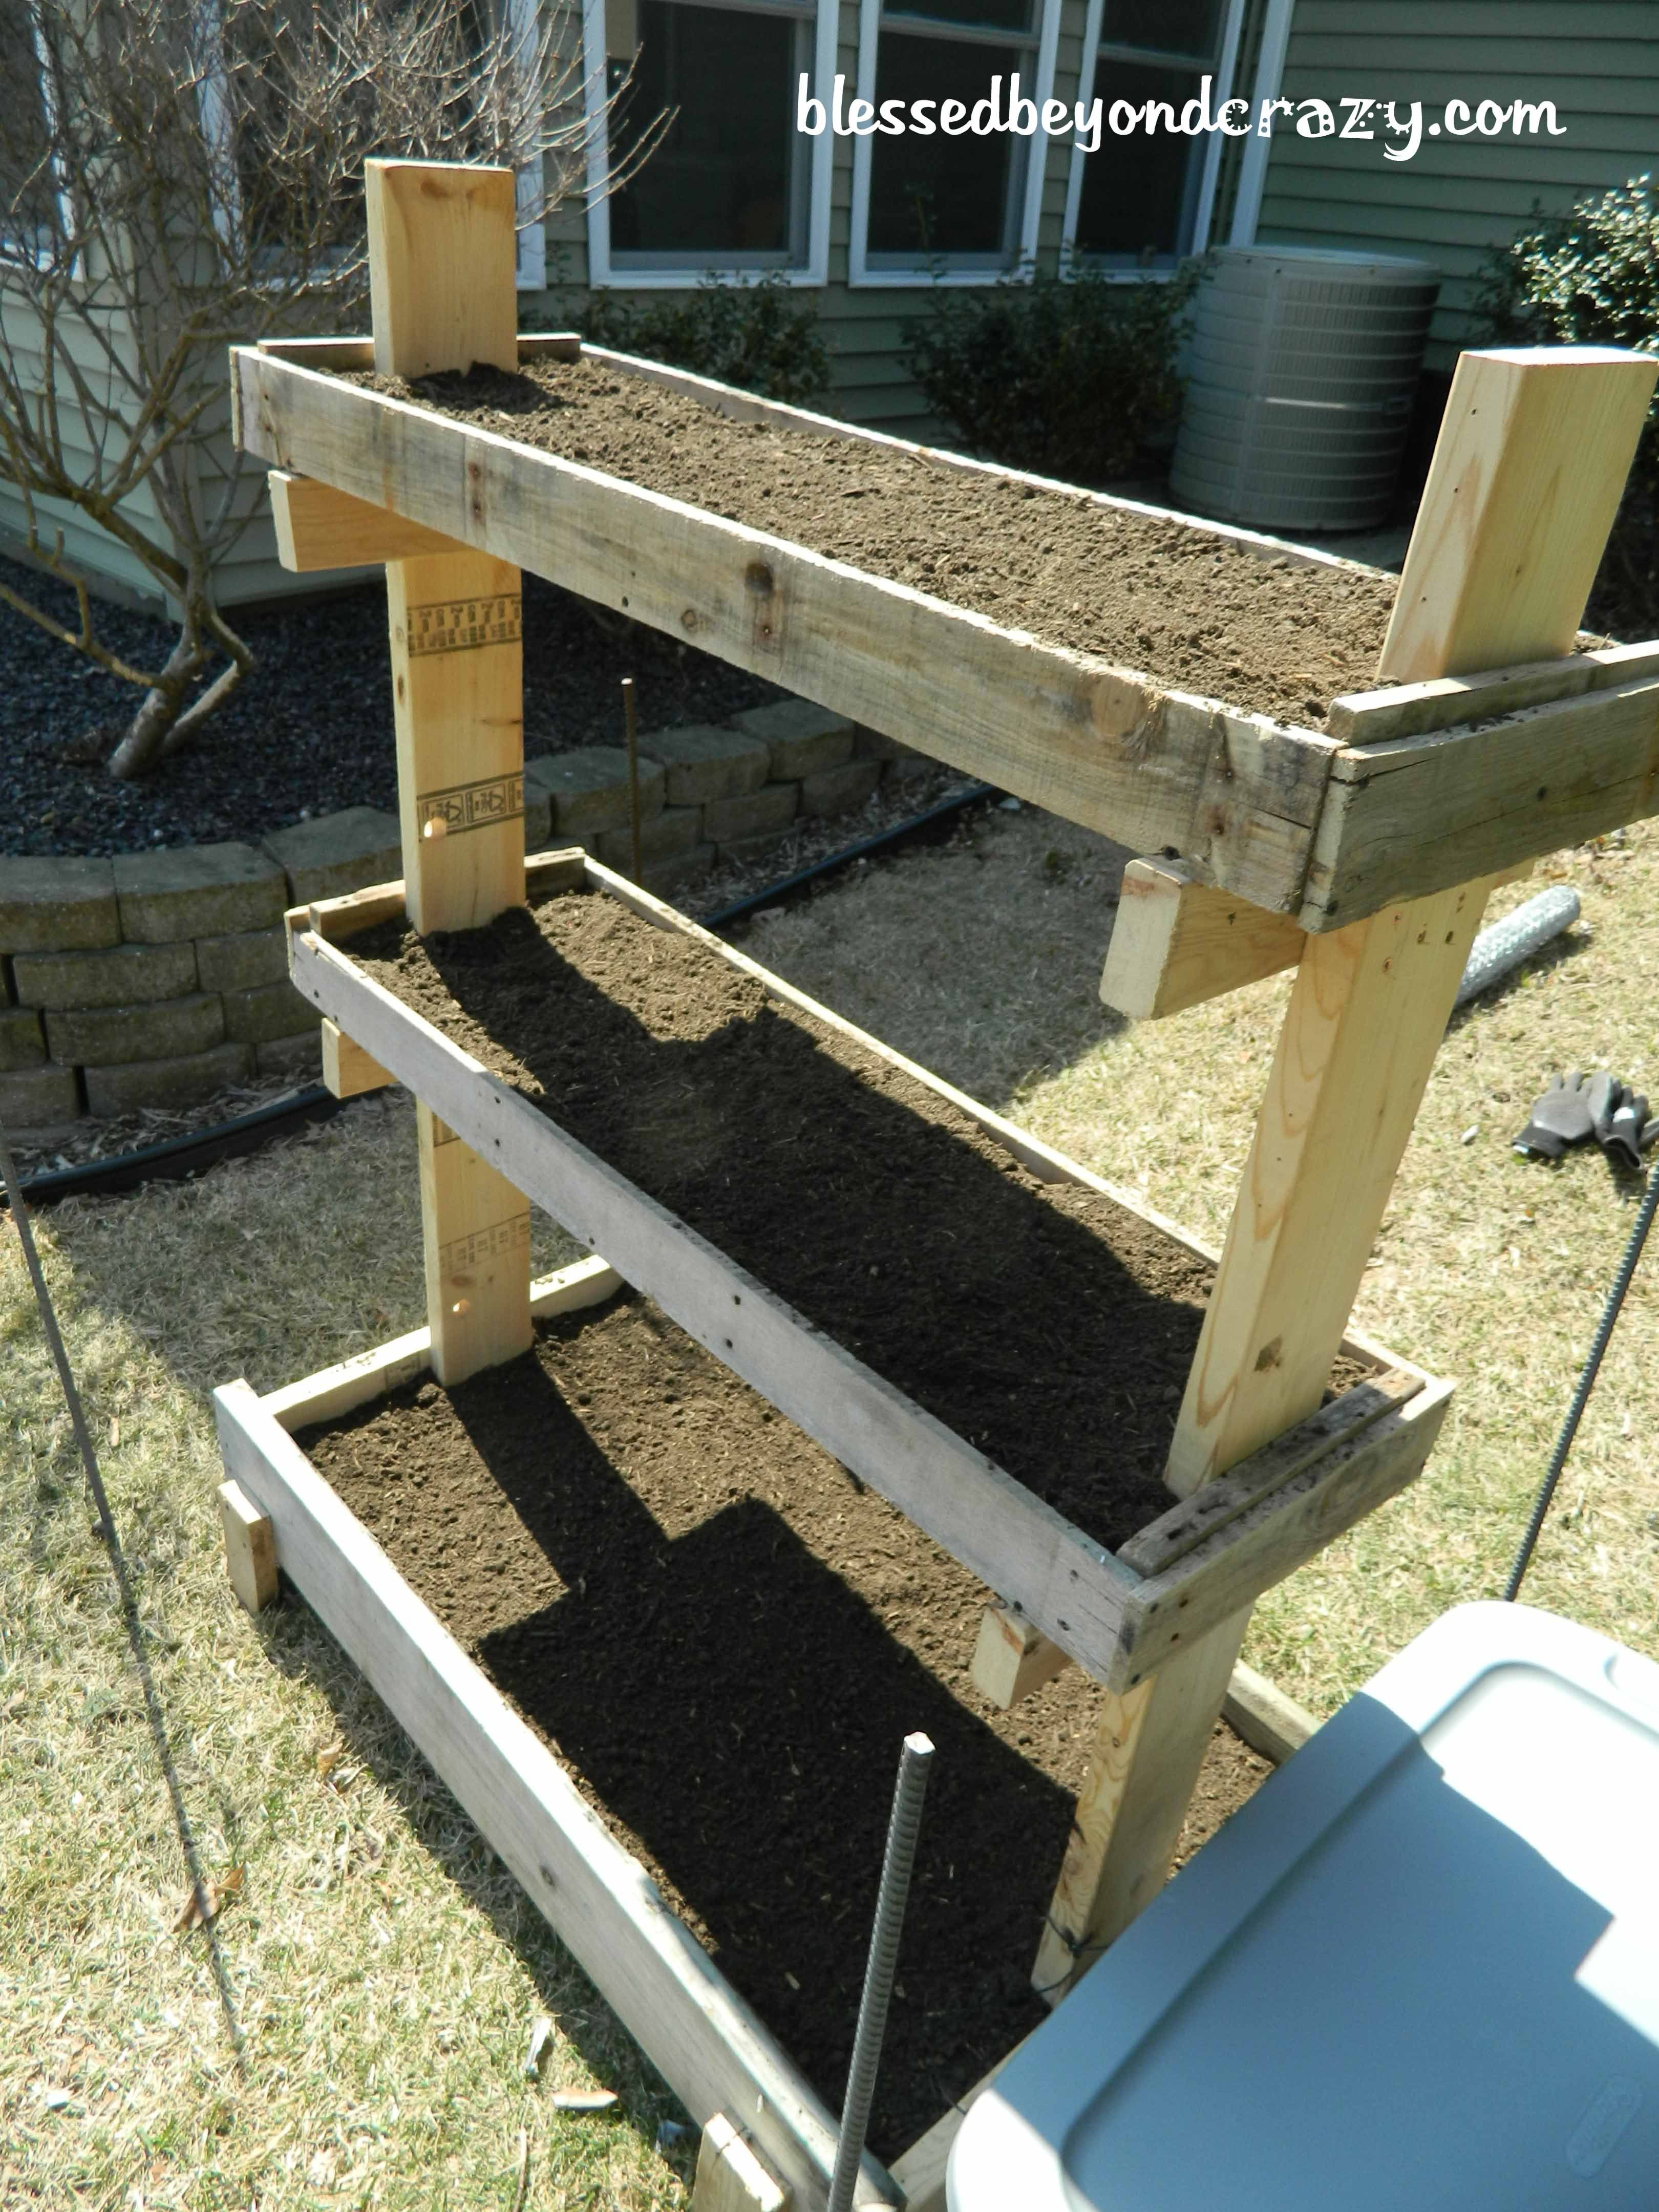 DIY Gardening box made from pallets. Perfect for a small